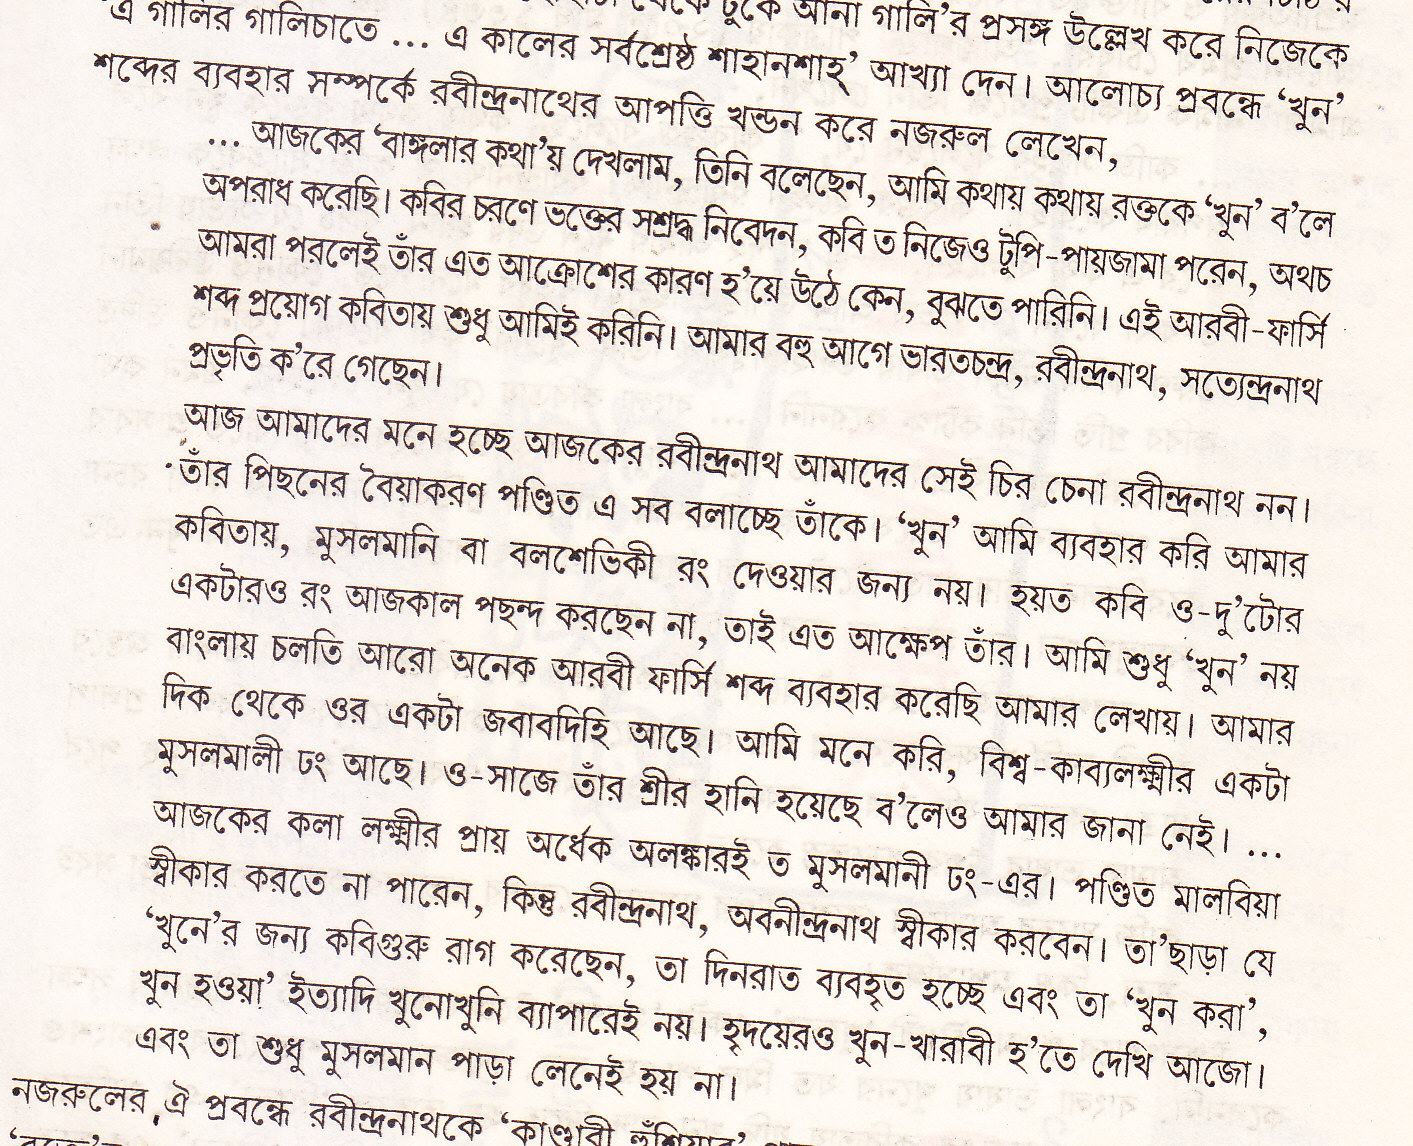 marxist na 2013 he wrote in atmasakti in 14th paus issue an essay barar piriti balir bandh in reply to the the essays of rabindranath sahitya dharma